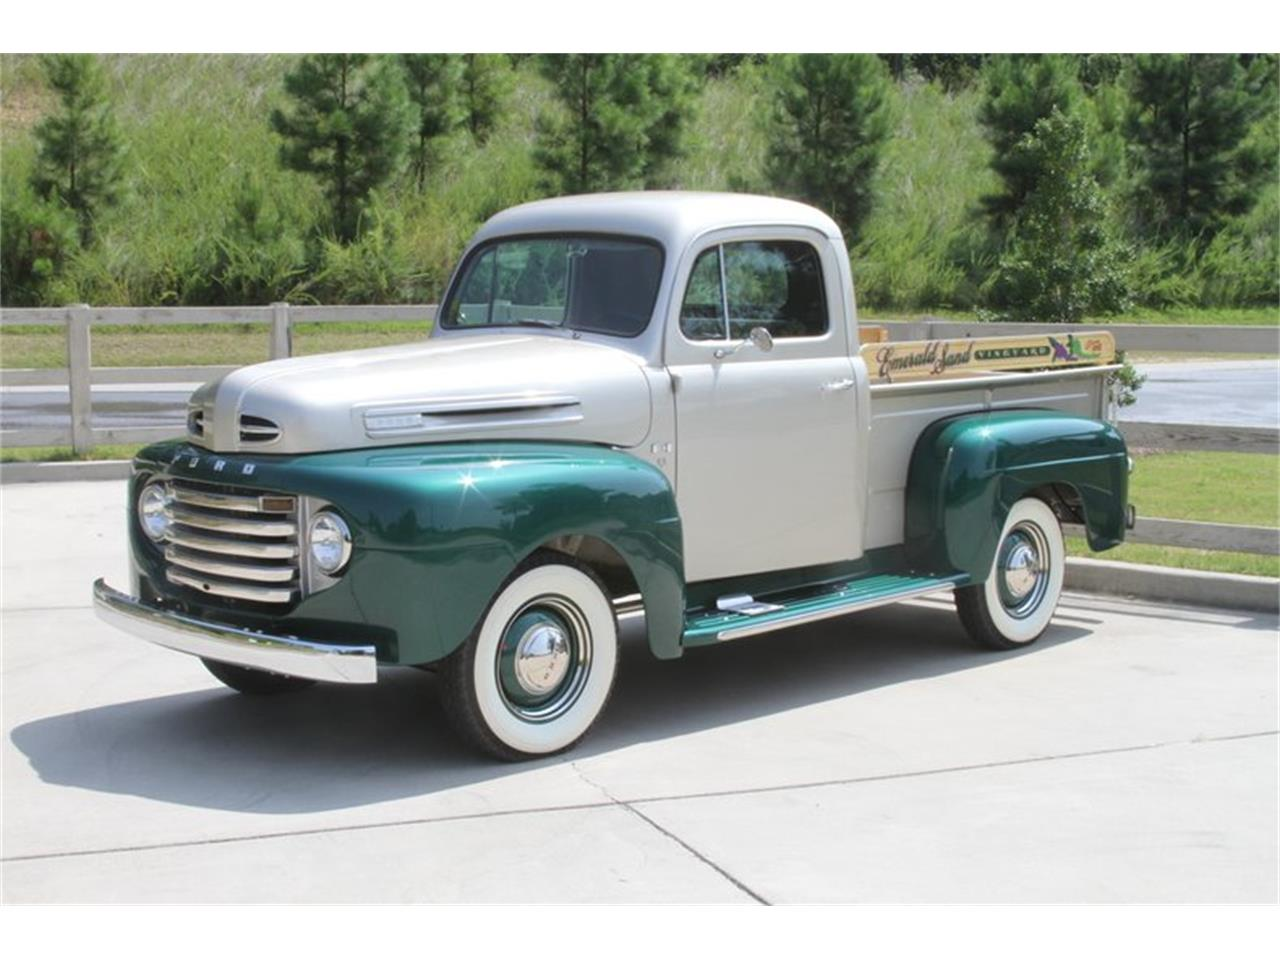 Large Picture of Classic 1949 Ford F1 located in Vero Beach Florida - $51,900.00 - MAJX